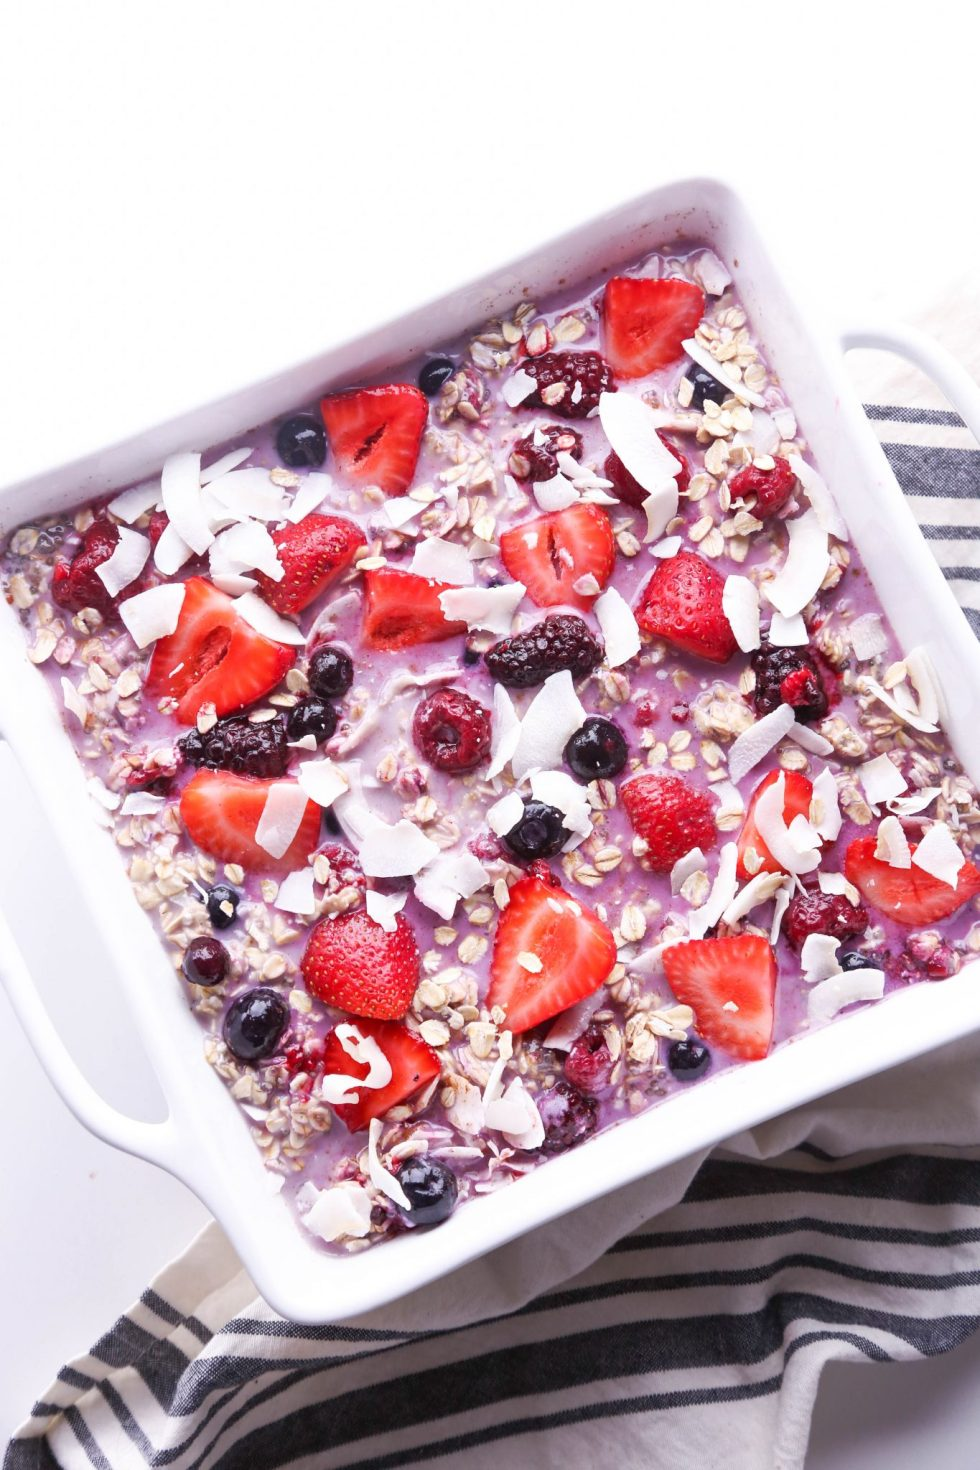 Mixed Berry Baked Oatmeal | Free of gluten, dairy, and refined sugar; Vegan friendly.